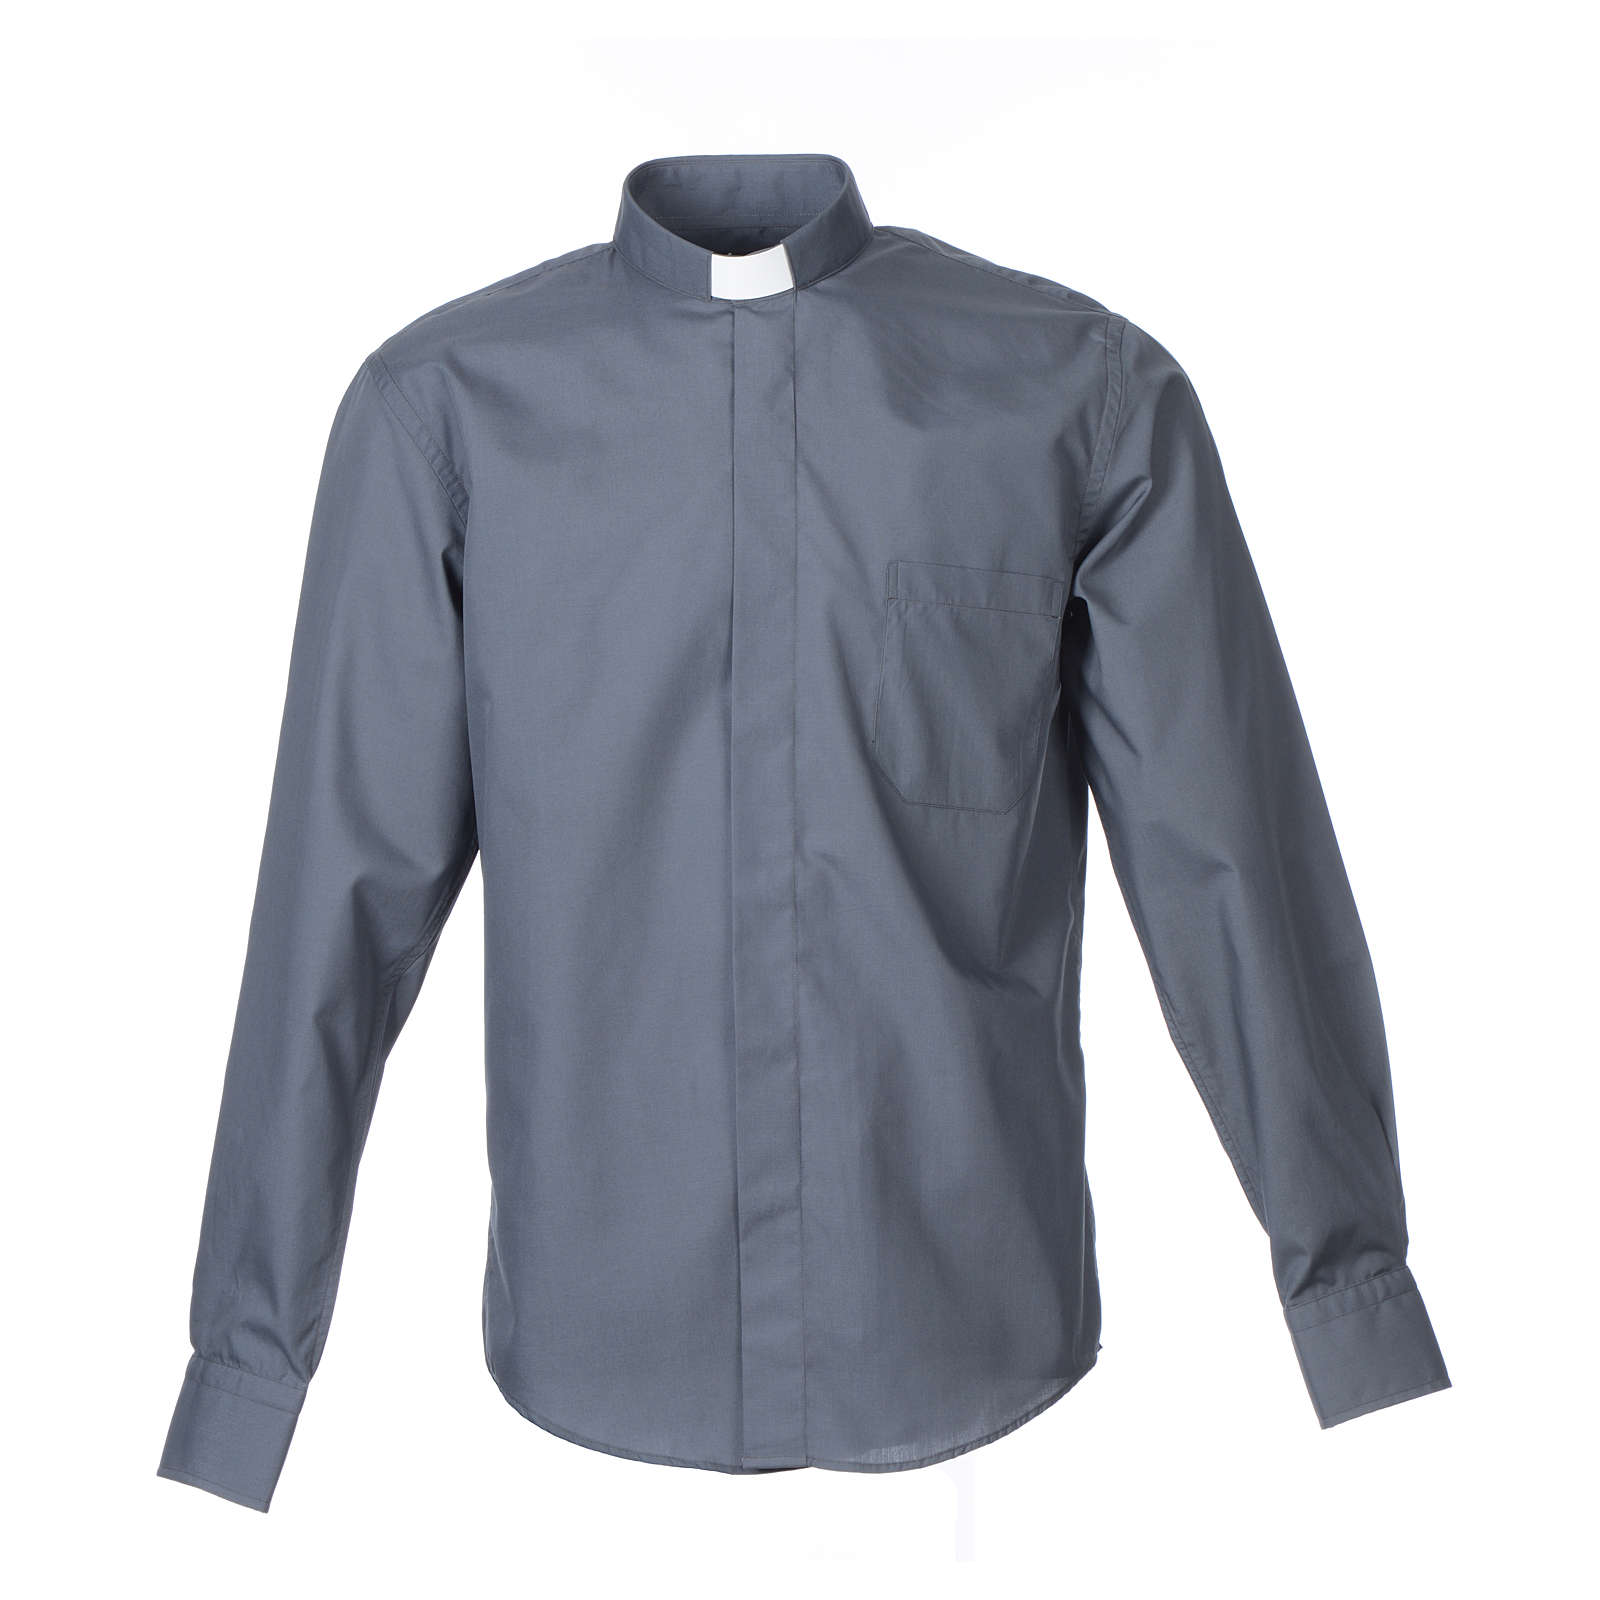 Dark Grey Clergy Shirt long sleeve solid color mixed cotton 4